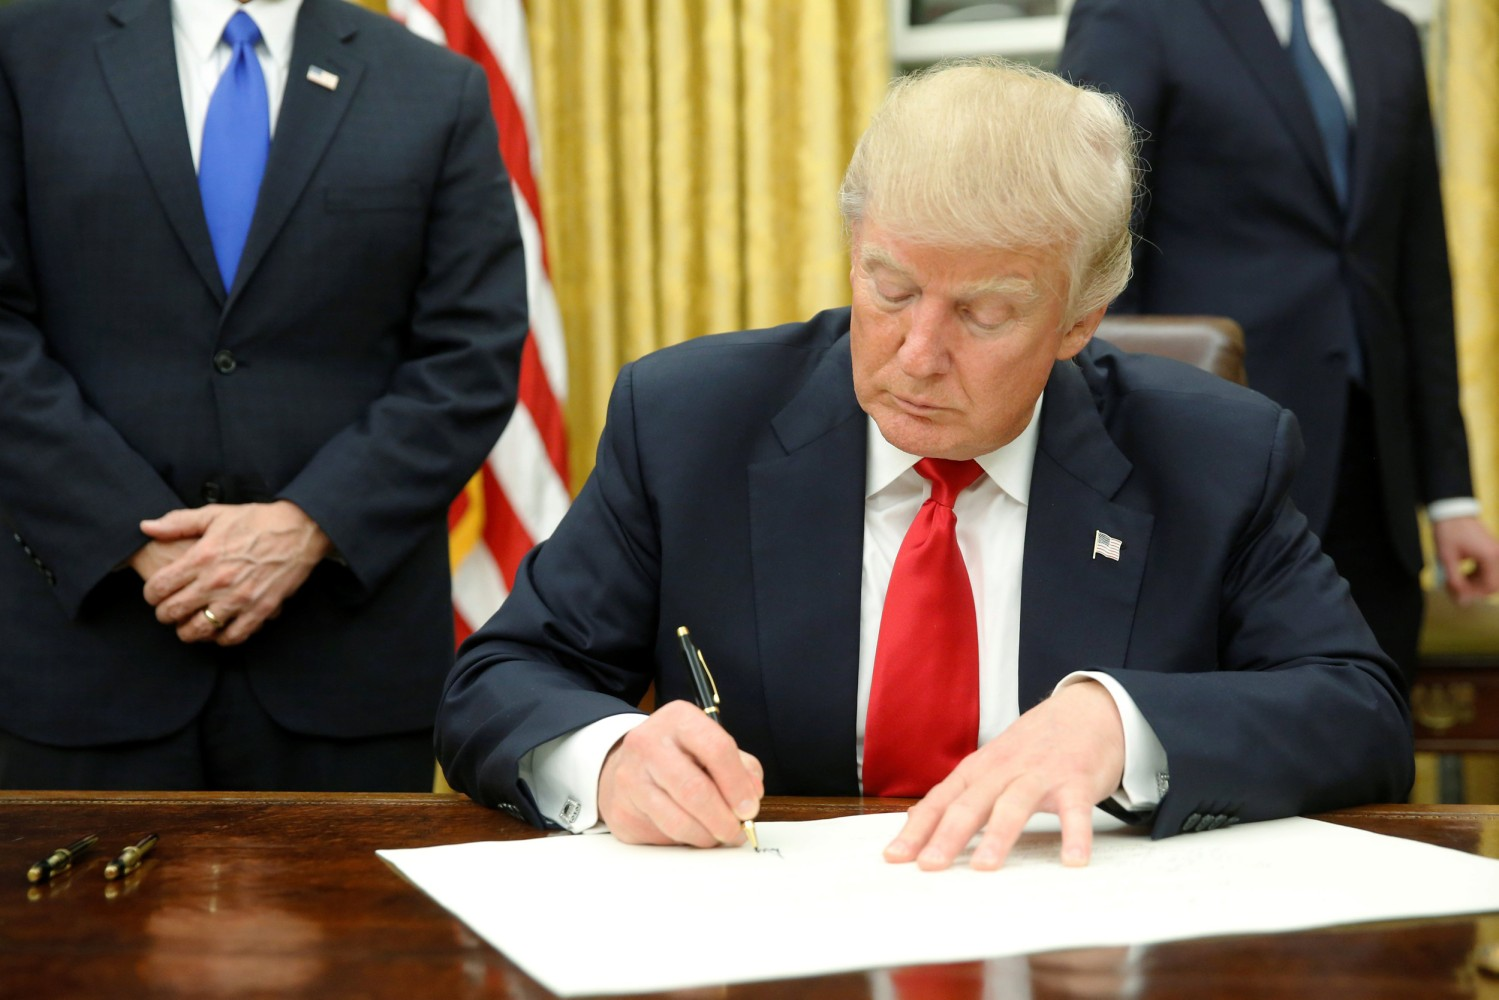 trump signs executive order on obamacare on inauguration day nbc